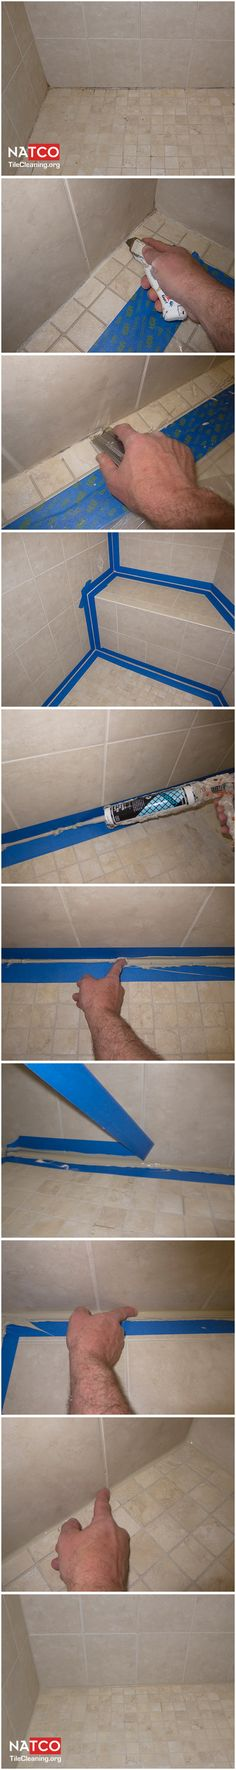 1000 images about re caulking shower on pinterest tile showers showers and utility knife. Black Bedroom Furniture Sets. Home Design Ideas